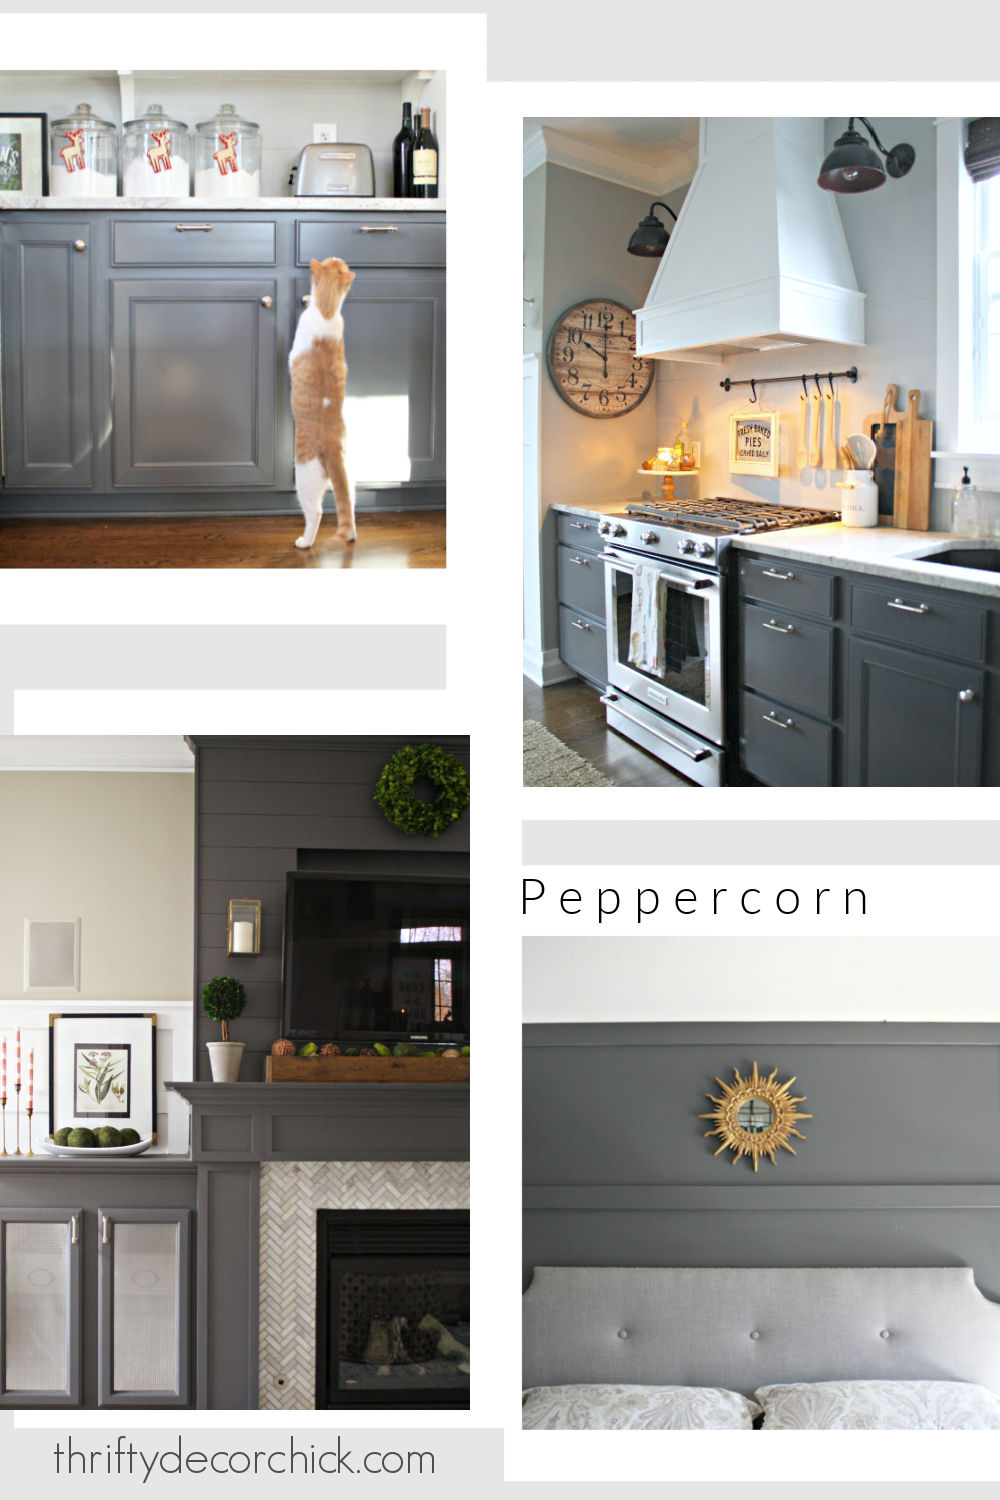 Peppercorn paint color Sherwin Williams